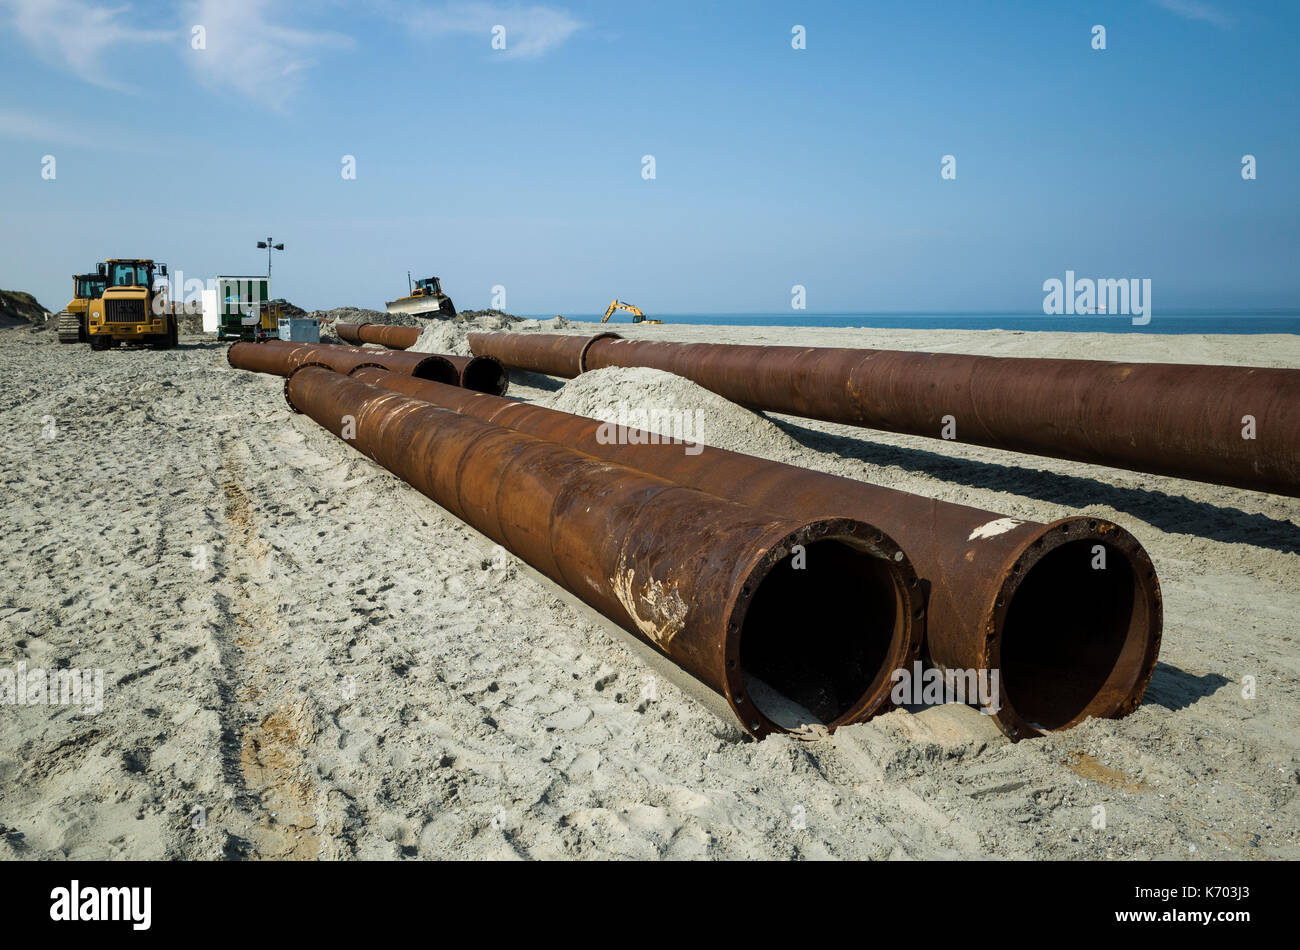 Am Strand, Langeoog.  Deutschland.  Germany.  A close-up of the industrial pipeline used as part of the active beach rebuilding, Strandaufschüttung, pumping sand up onto the sandy beaches.  Diggers and industrial machinery used to lay the pipeline along the beaches.  The metal pipes, which are heavily corroded with rust, create leading lines to the industrial machinery.  It's a sunny day with only light clouds in the sky. - Stock Image